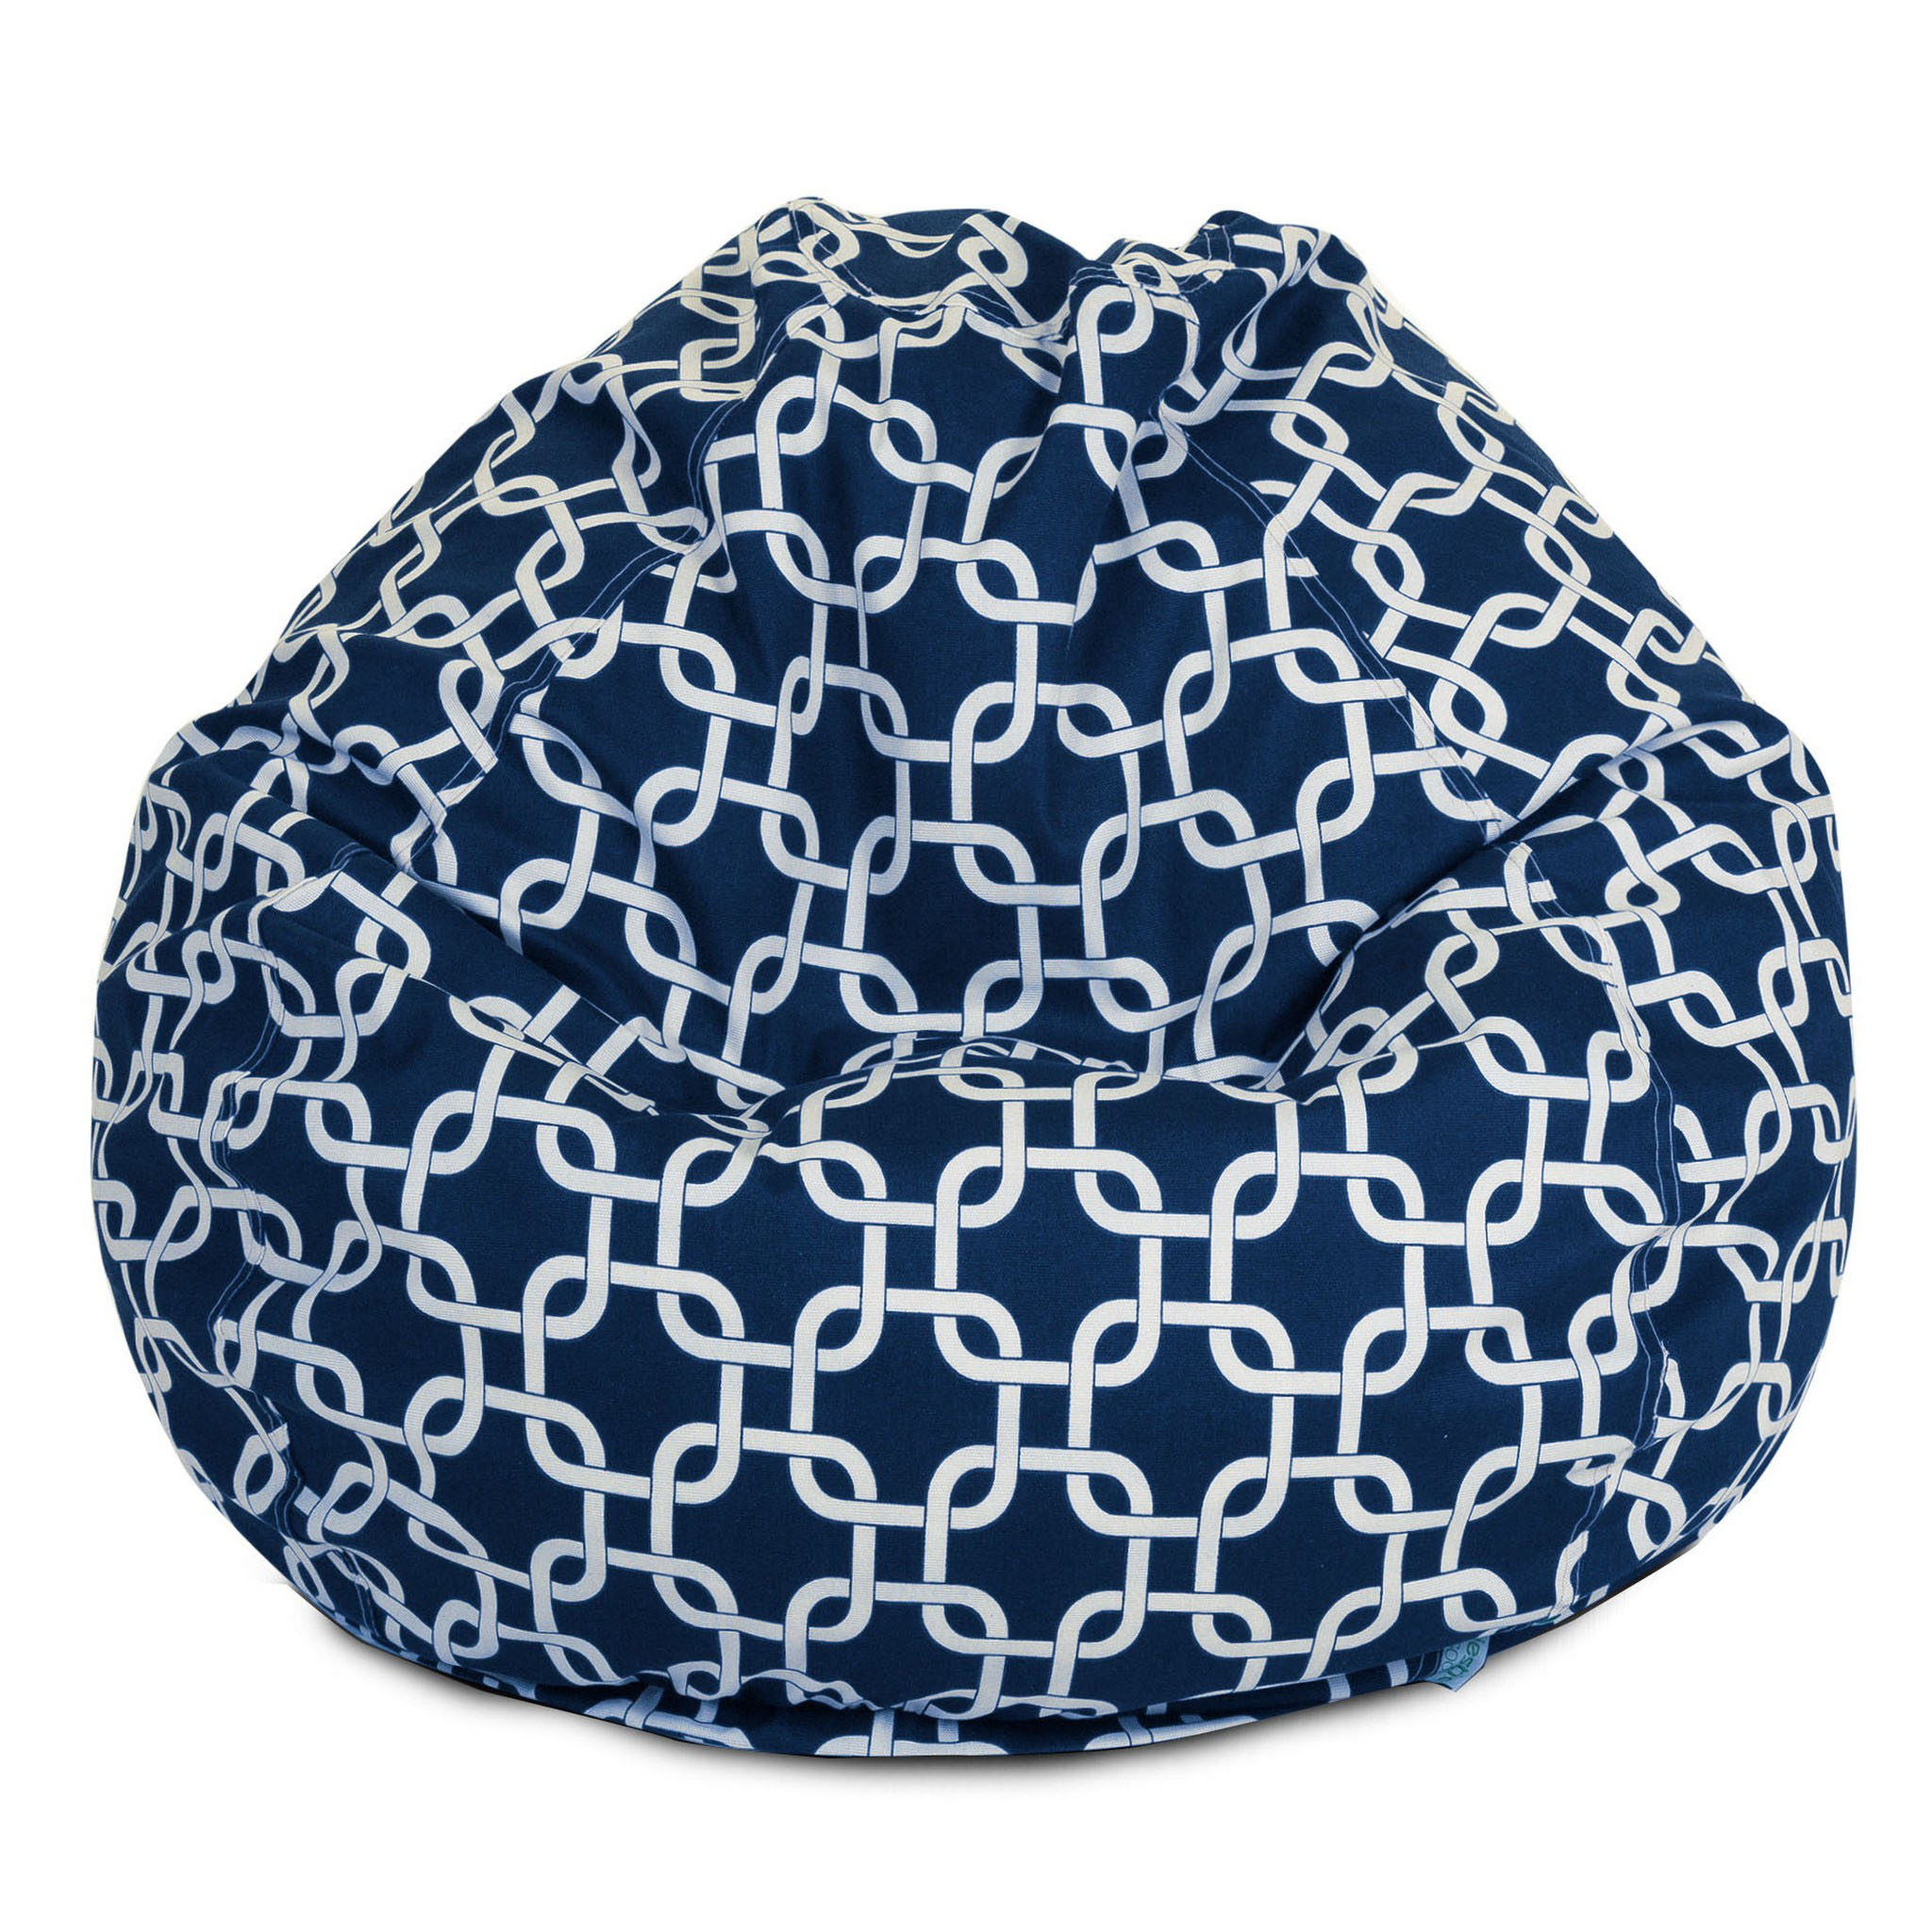 Majestic Home Goods Indoor Outdoor Navy Links Classic Bean Bag Chair 28 in L x 28 in W x 22 in H